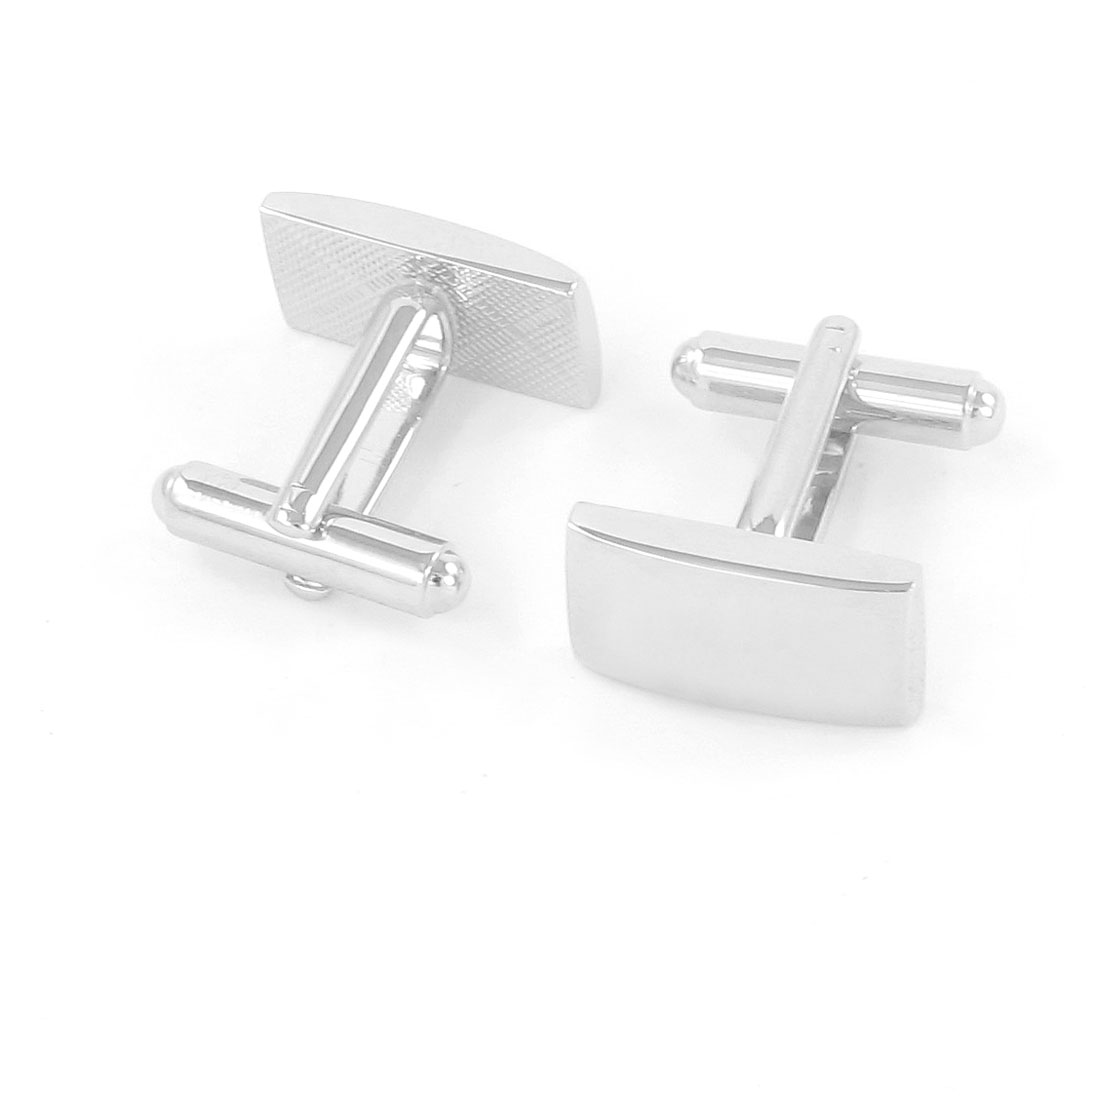 Pair Silver Tone Metallic Tuxedo Decor Cuff Links for Groom Man